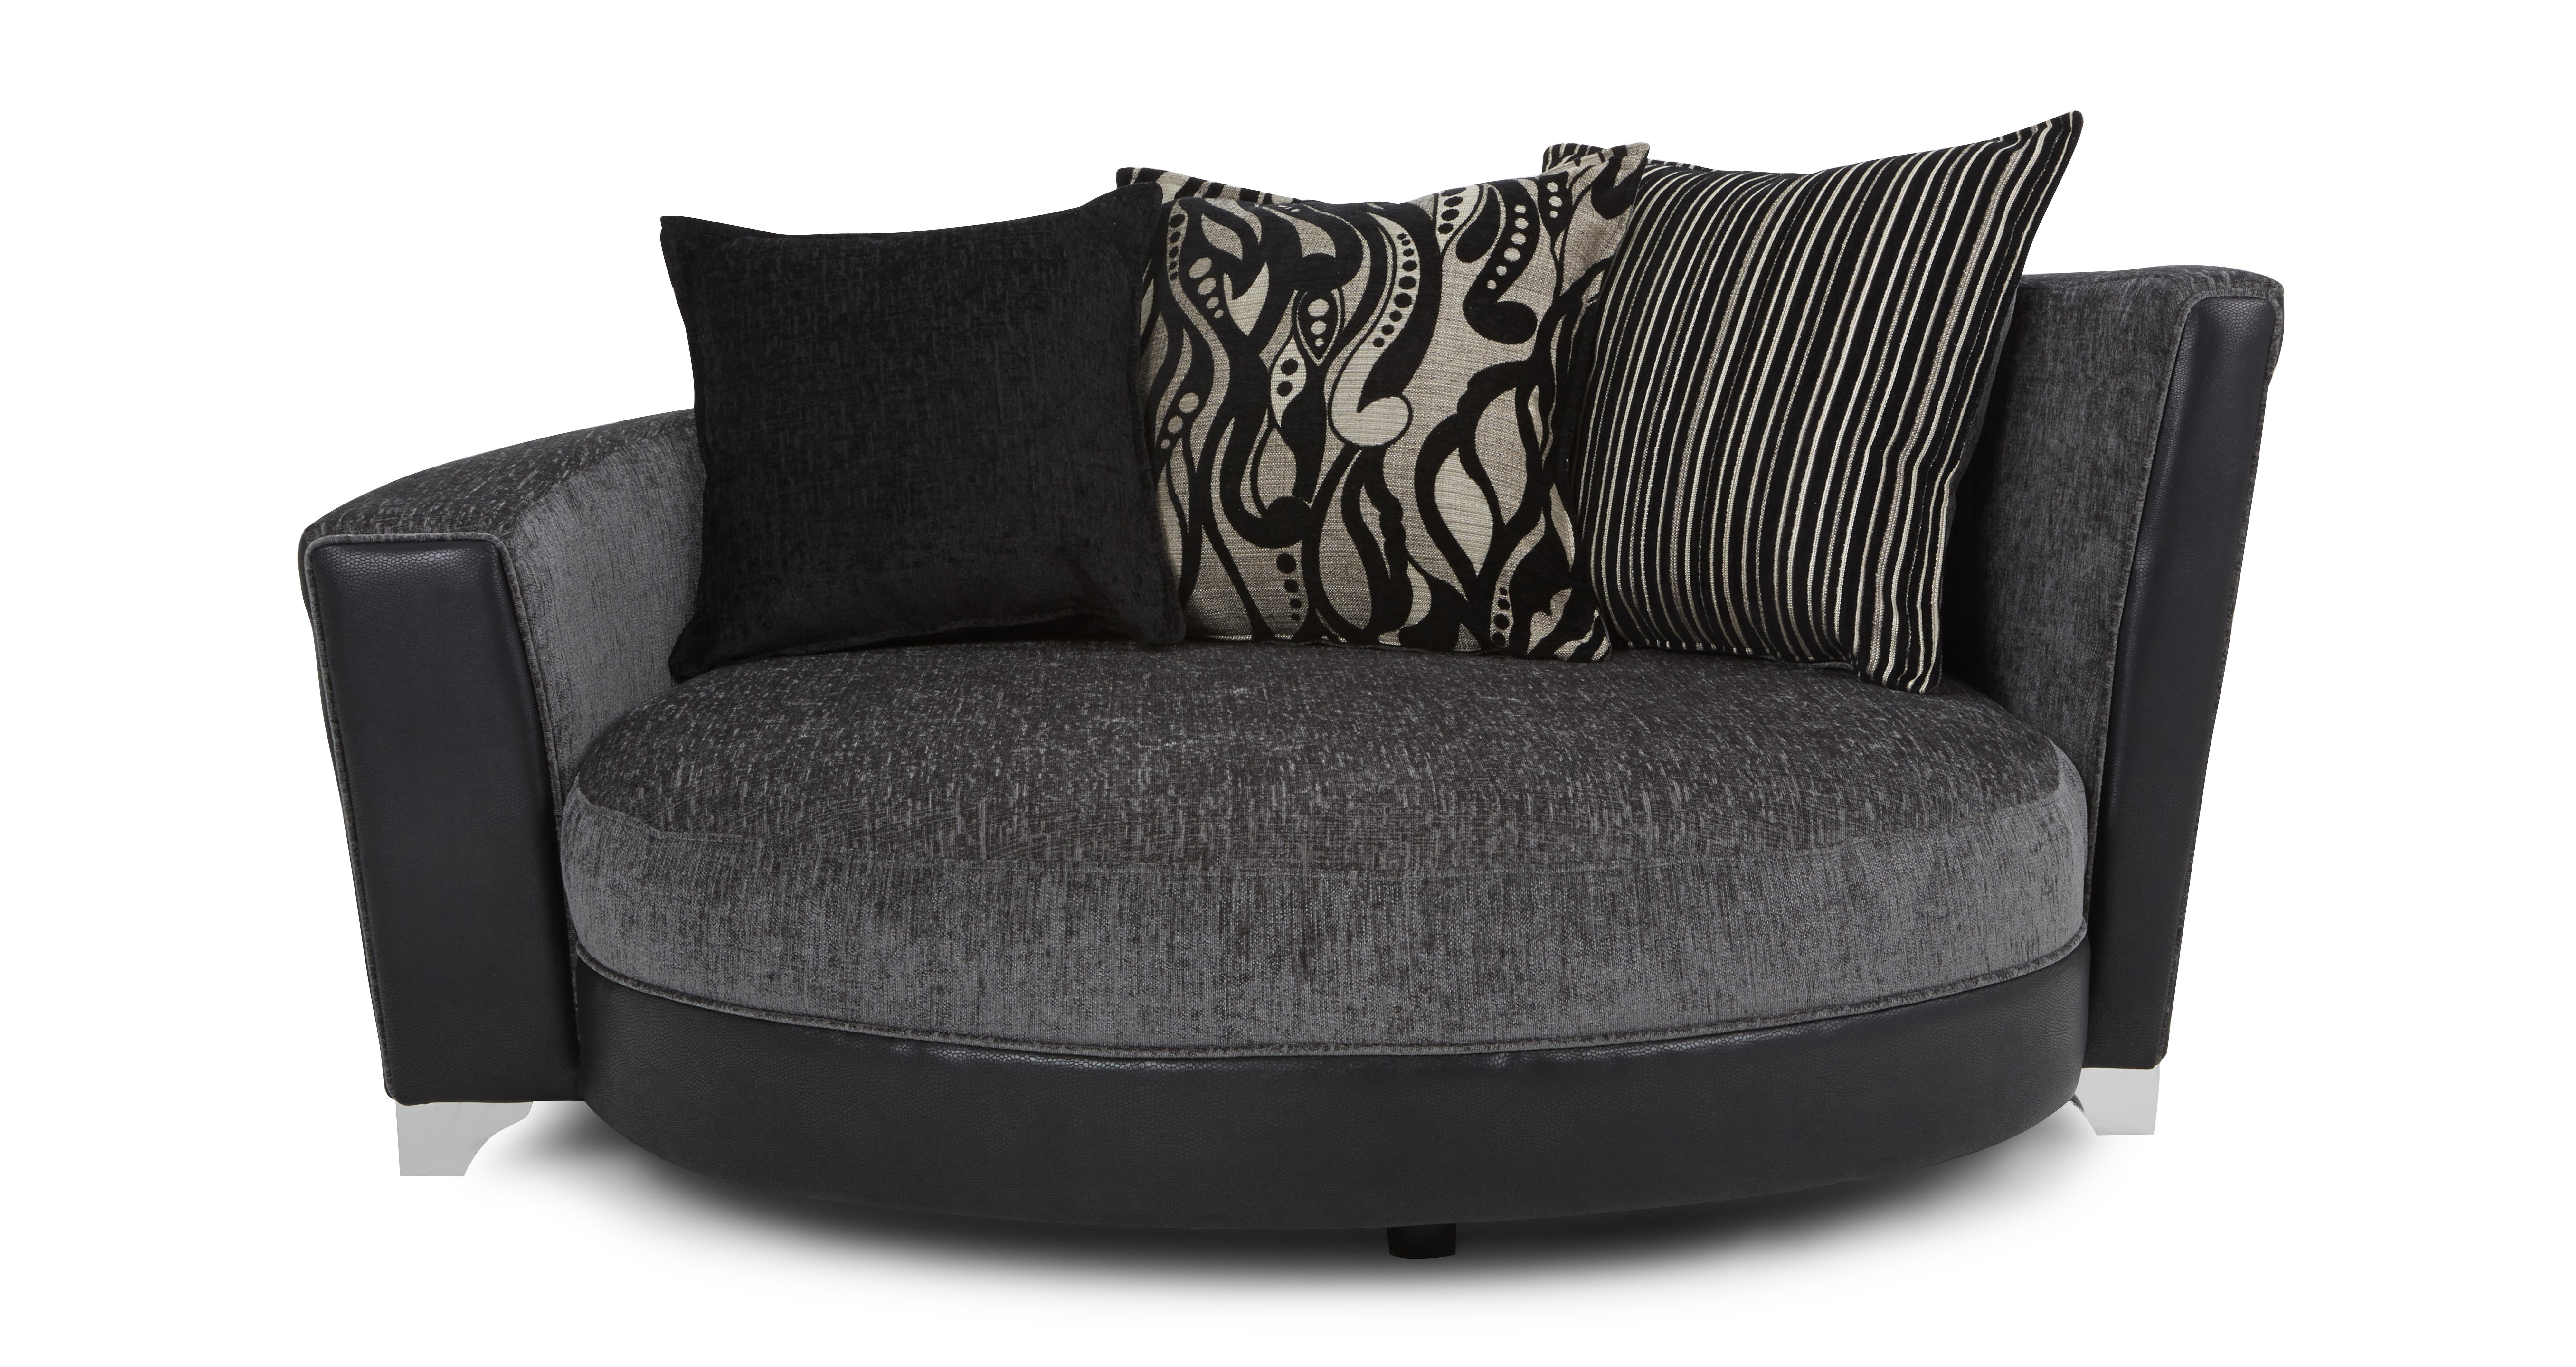 Sofas Center Circle Sofa Chair Round Chaircircular Chairround Throughout Circular Sofa Chairs (Image 11 of 15)